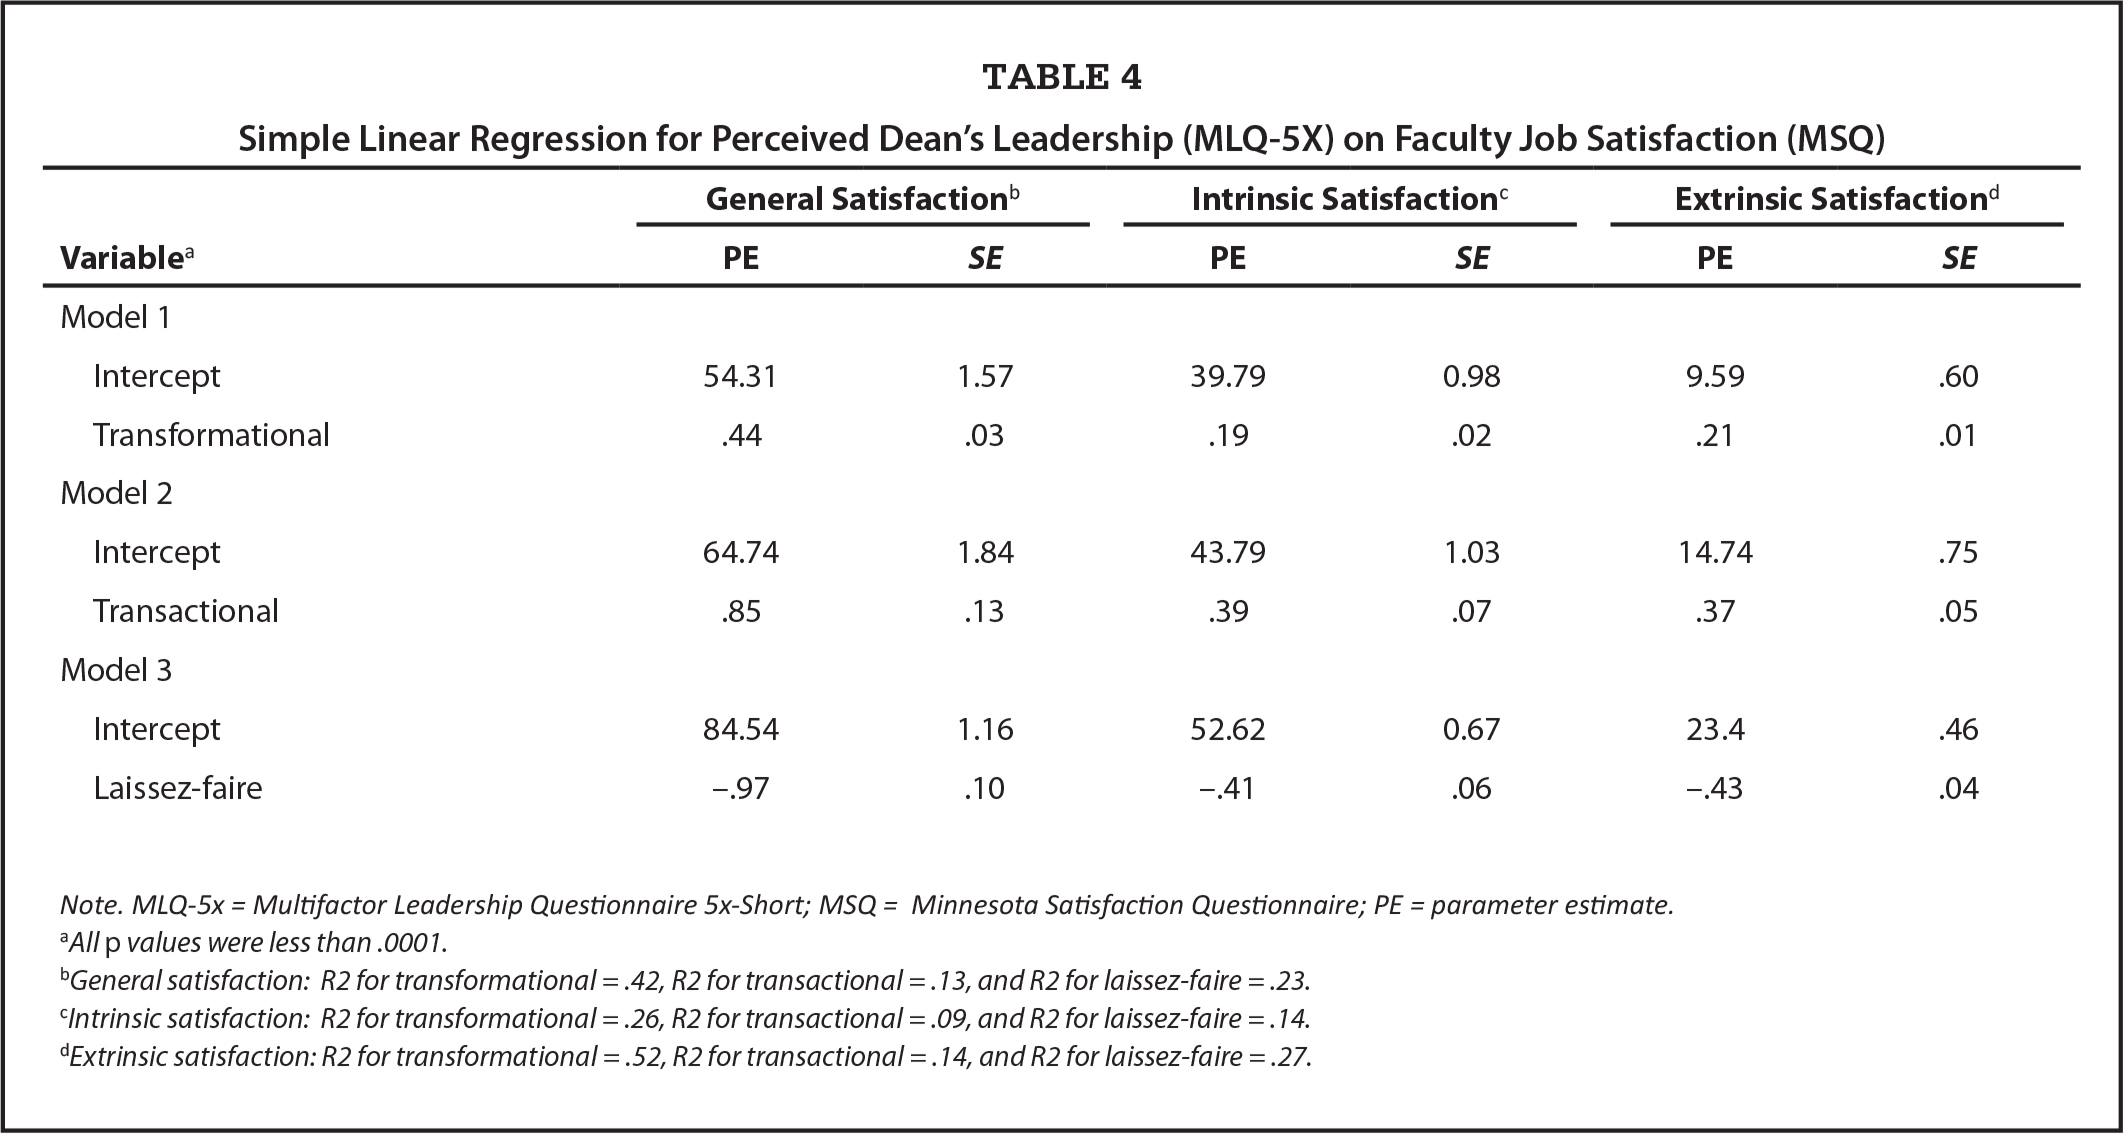 Simple Linear Regression for Perceived Dean's Leadership (MLQ-5X) on Faculty Job Satisfaction (MSQ)